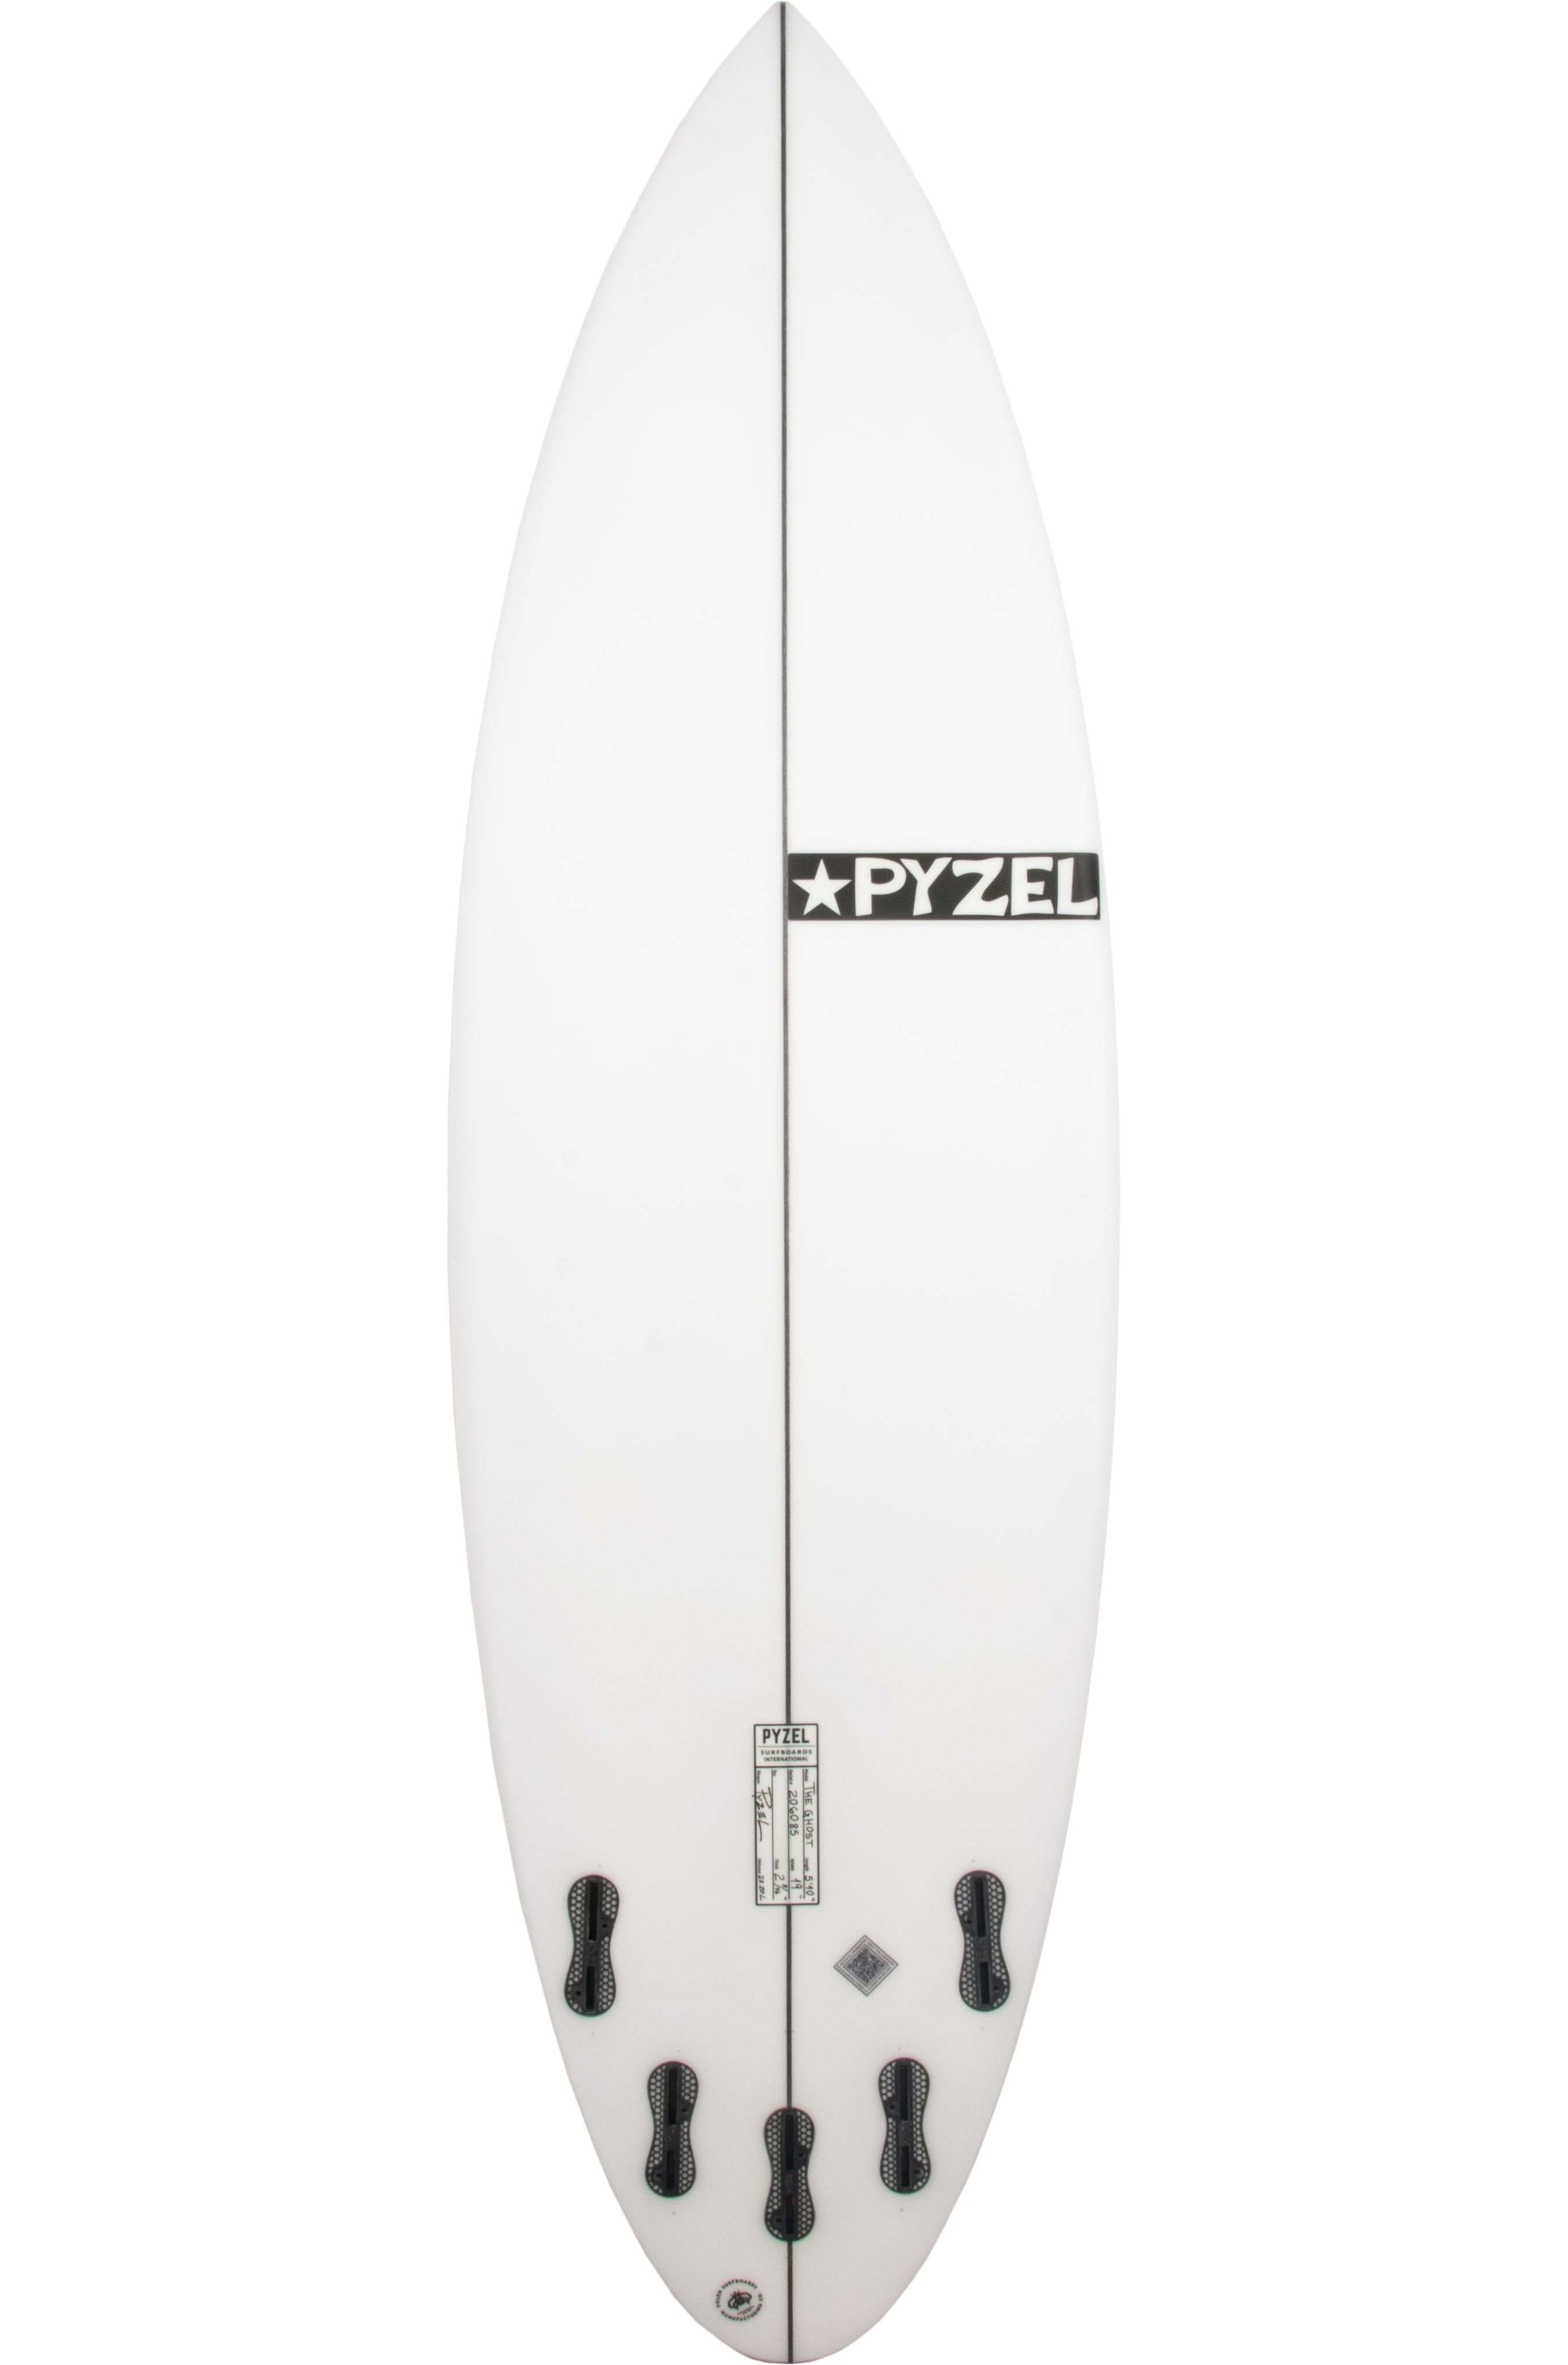 Prancha Surf Pyzel 6'4 GHOST Round Pin Tail - White FCS II Multisystem 6ft4